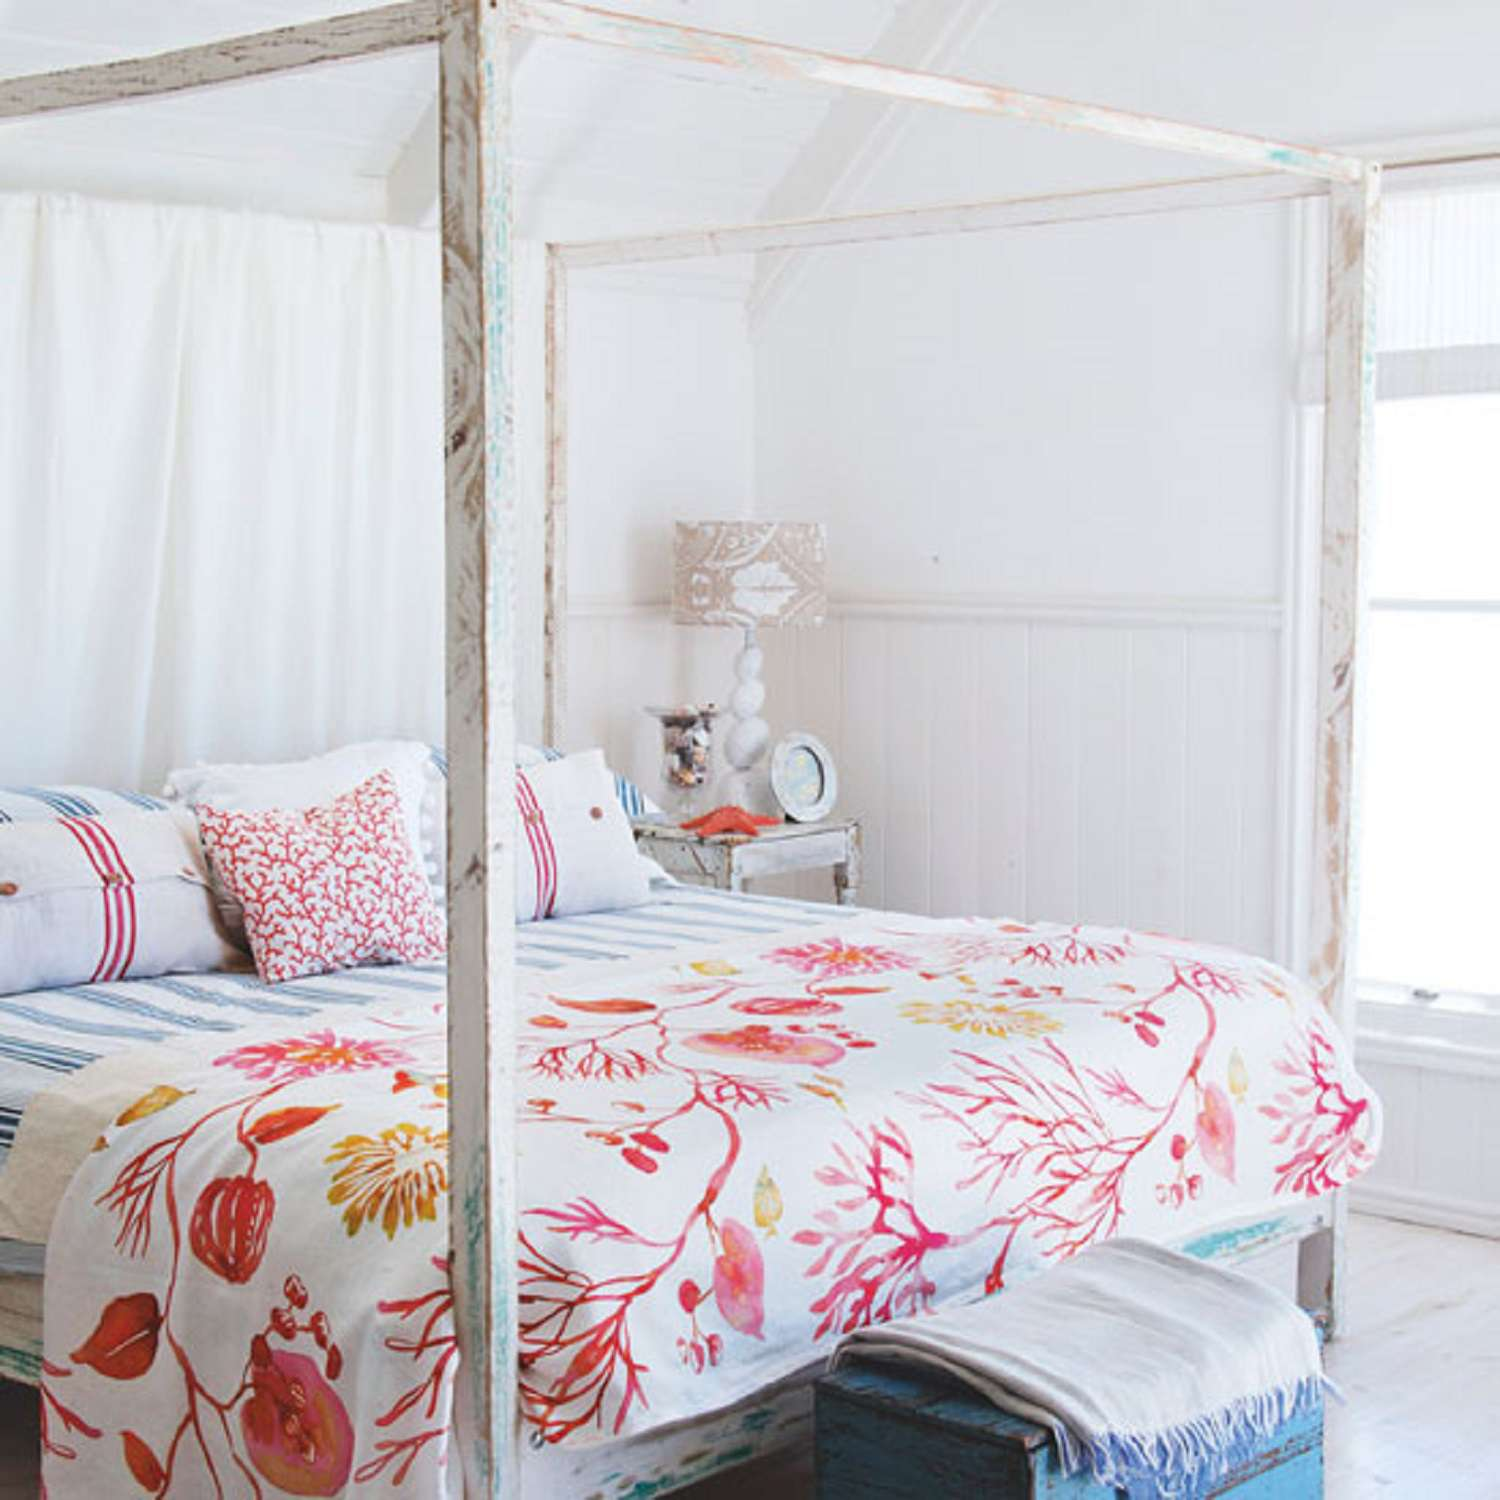 Coral printed bedding